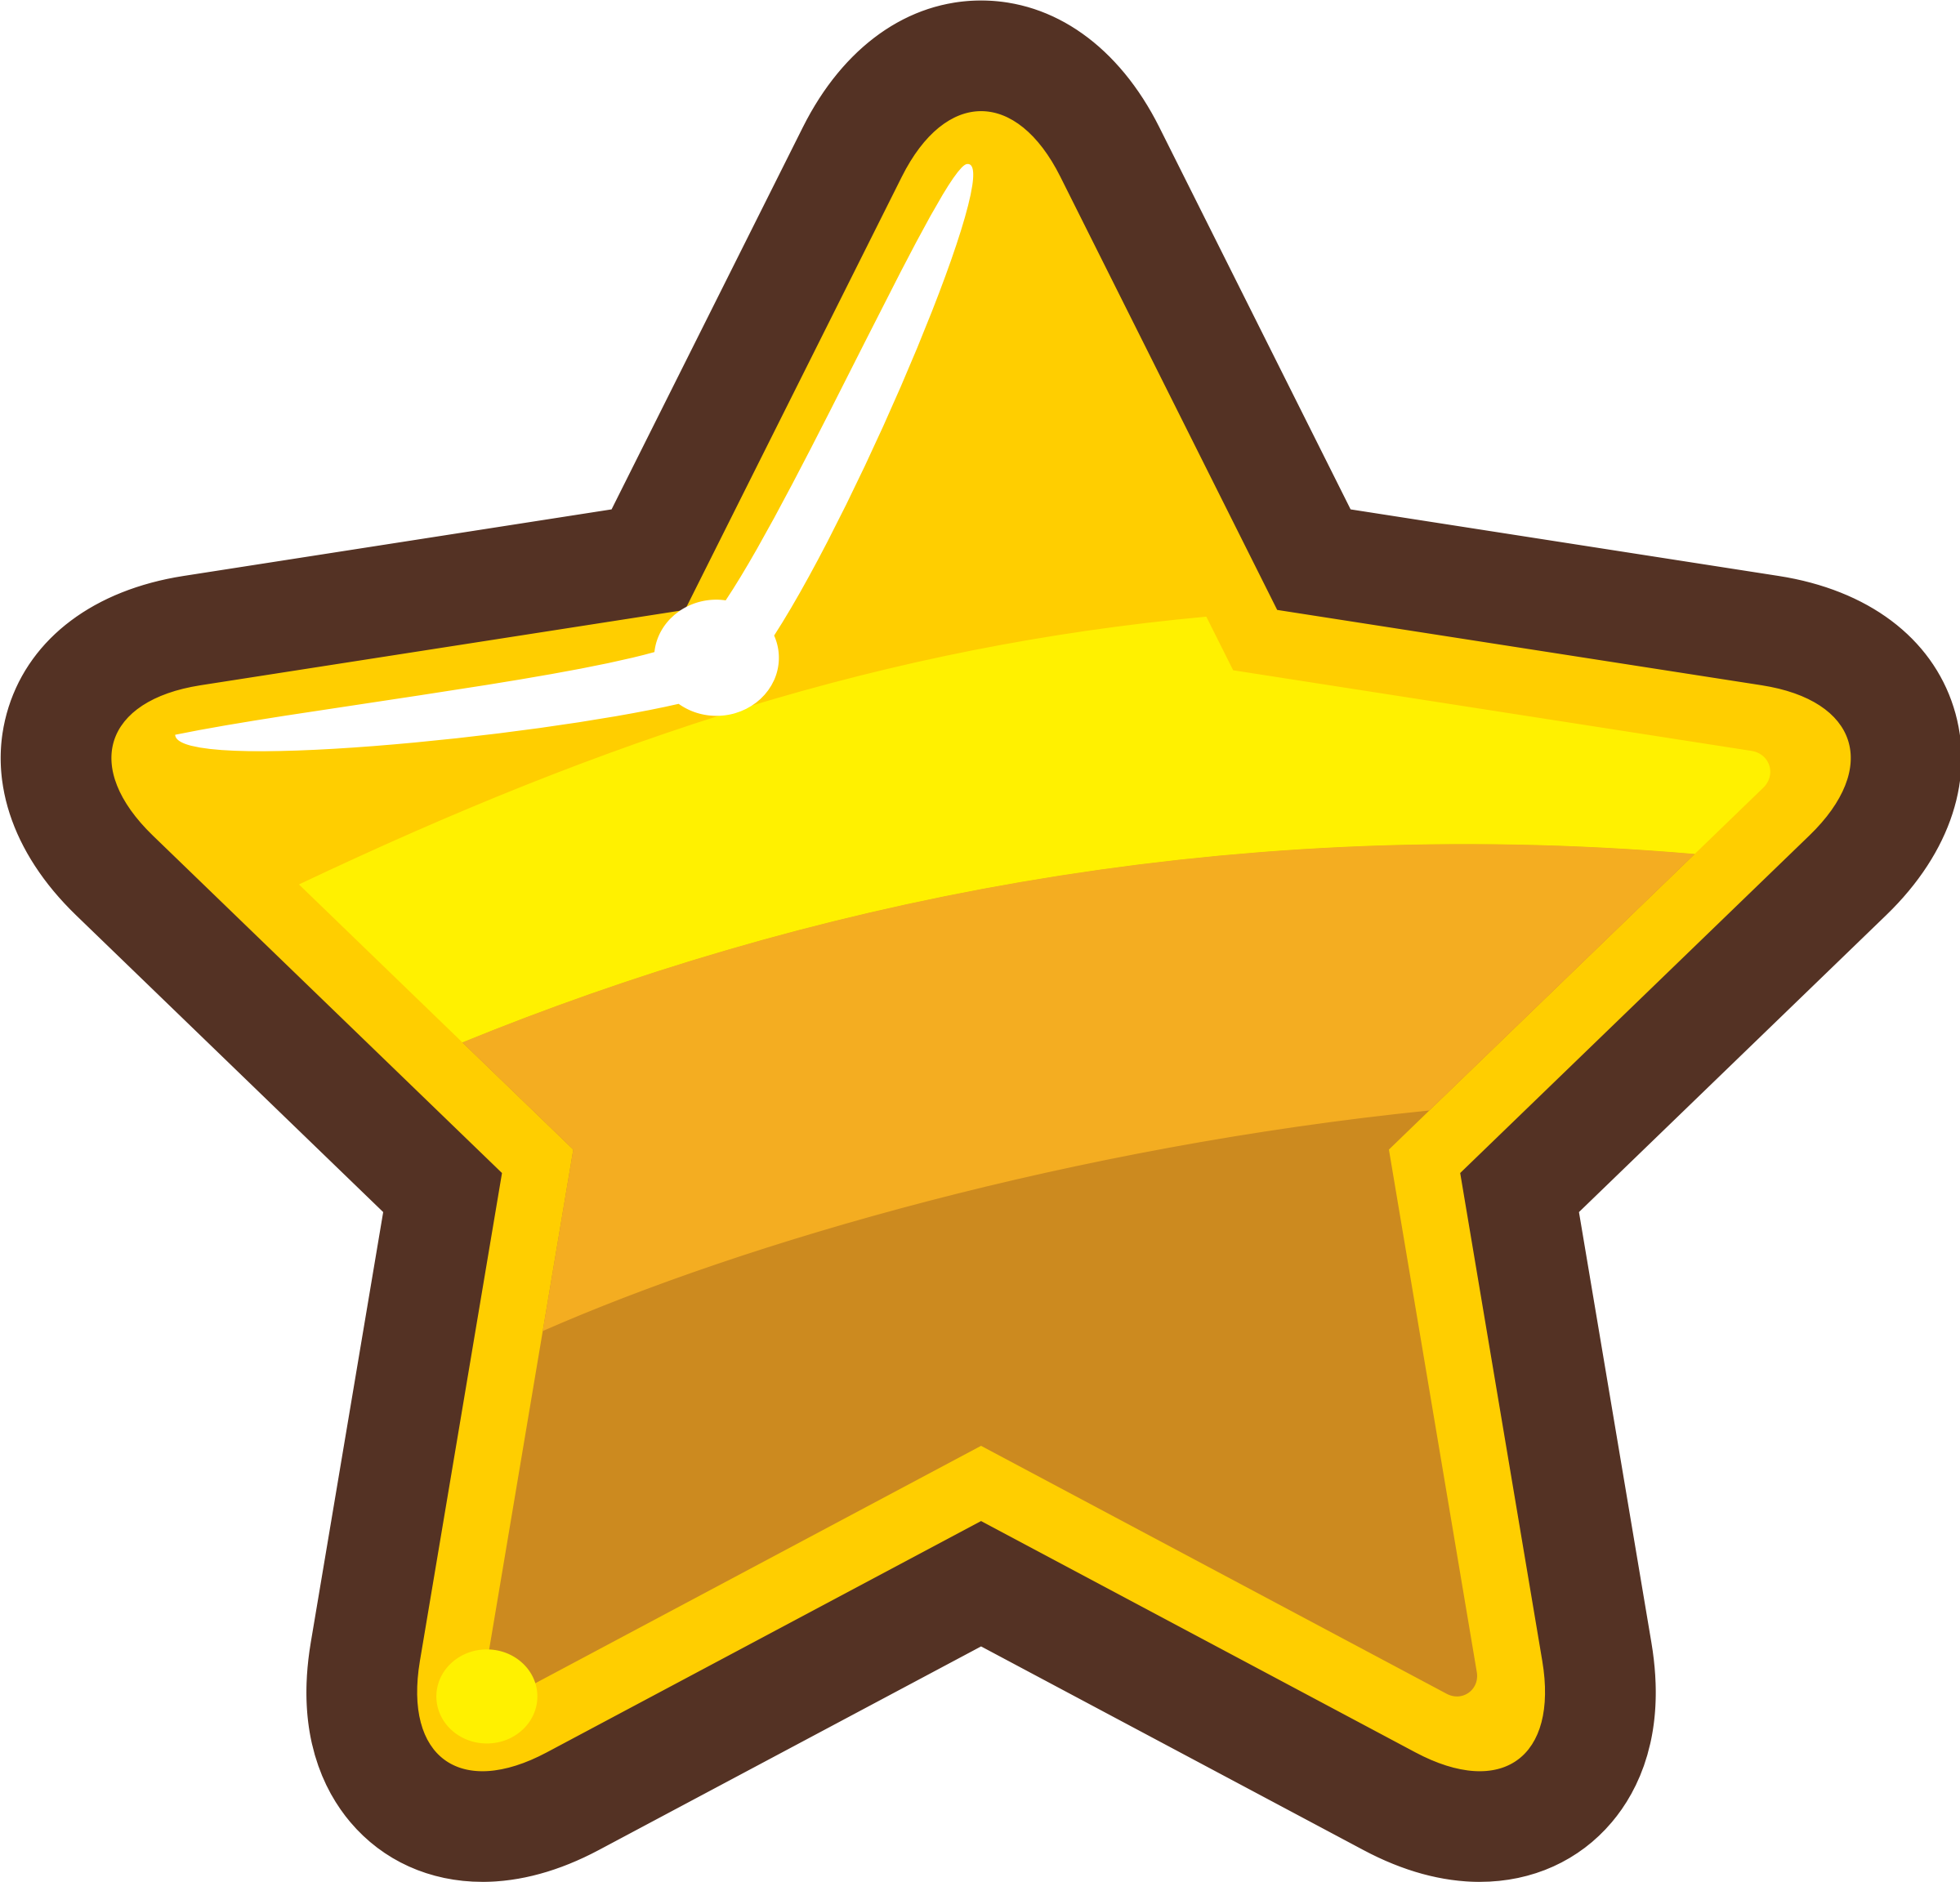 Cartoon Gold Star by Exocet